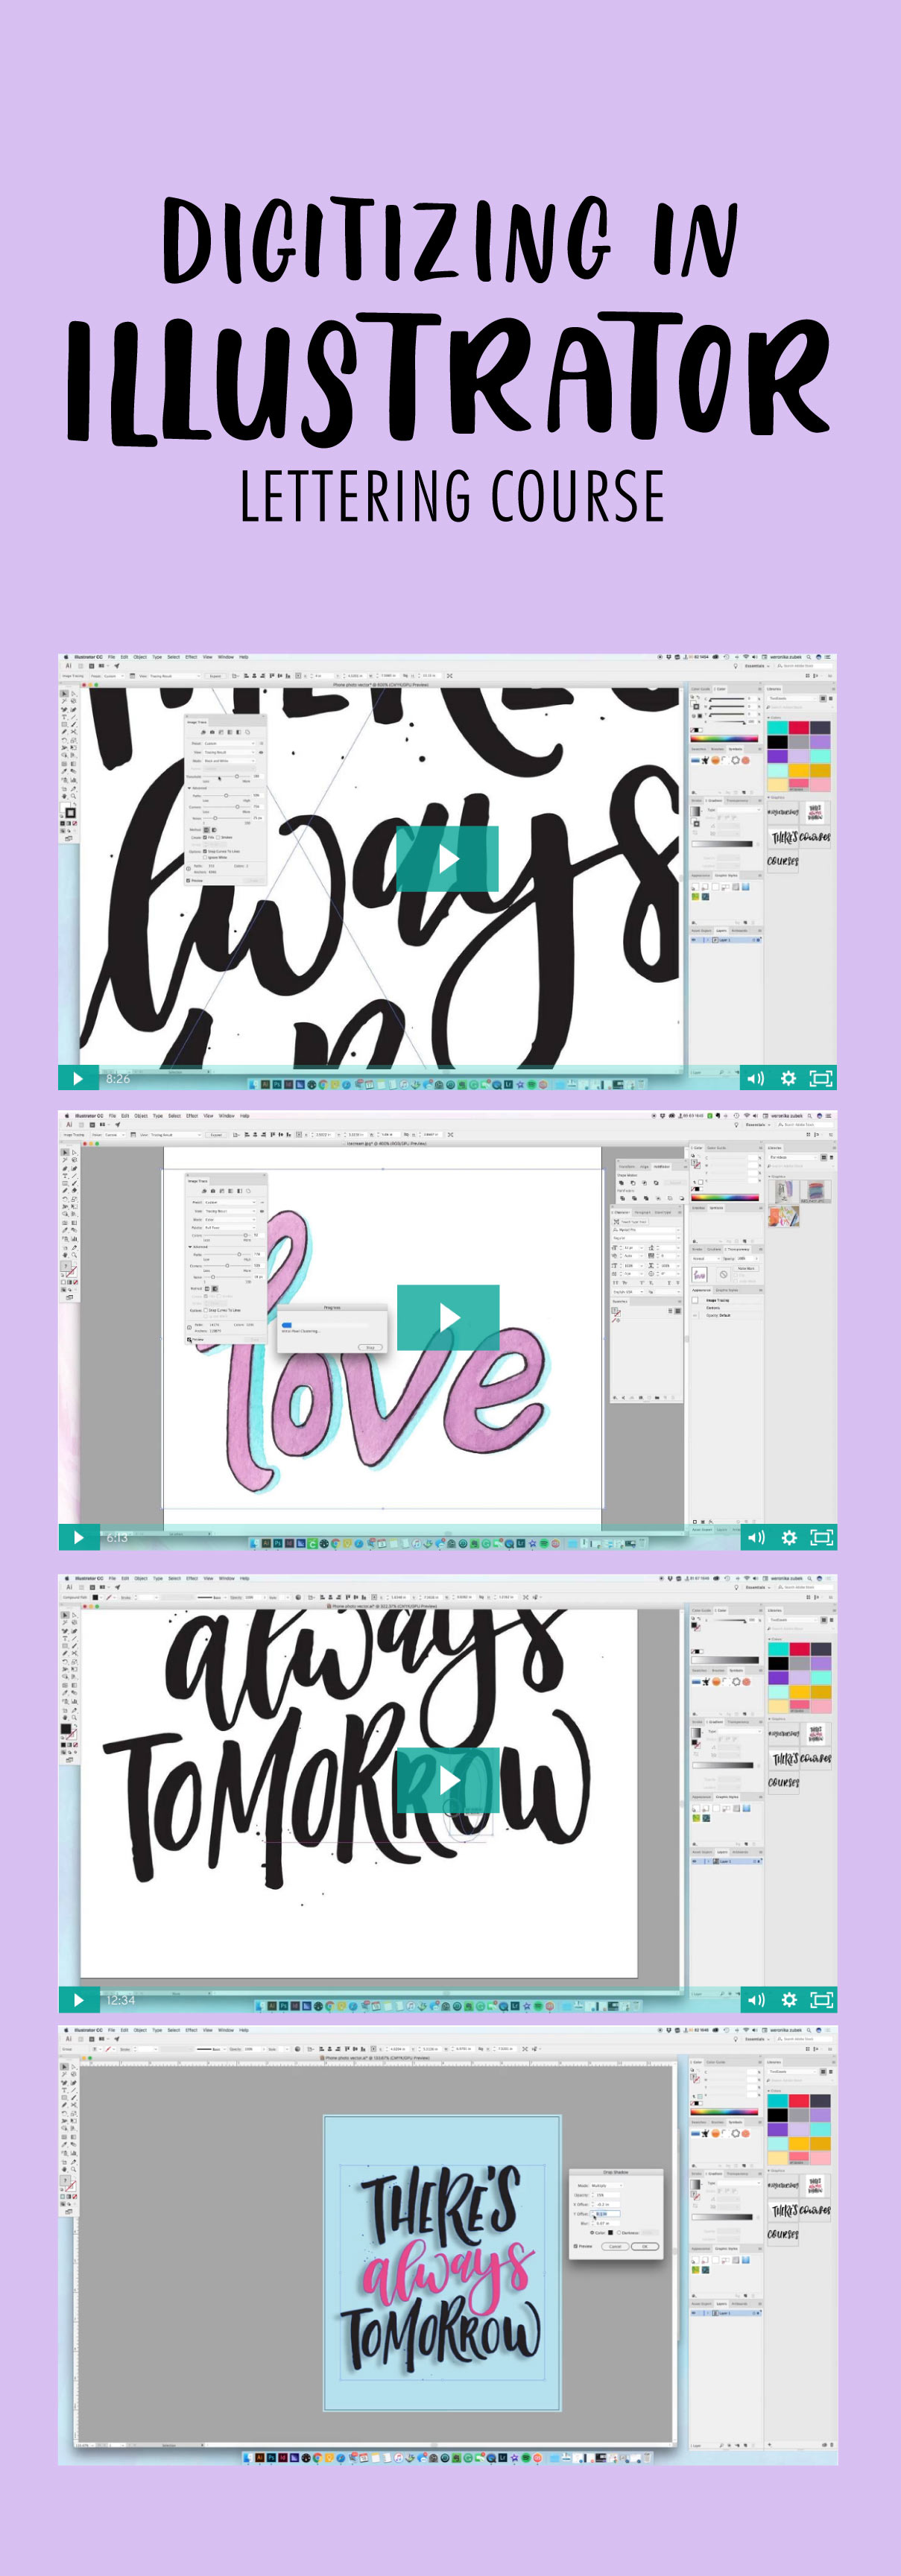 Learn how to digitize your lettering using Illustrator. Necessary Illustrator tools and shortcuts to edit your design How to vectorize your lettering using two techniques, vectorize watercolored lettering, vectorize black and white inked lettering, recolor your artwork. Learn lettering. How to prepare your files for web and print, and create your very own greeting card from scratch to printed piece.